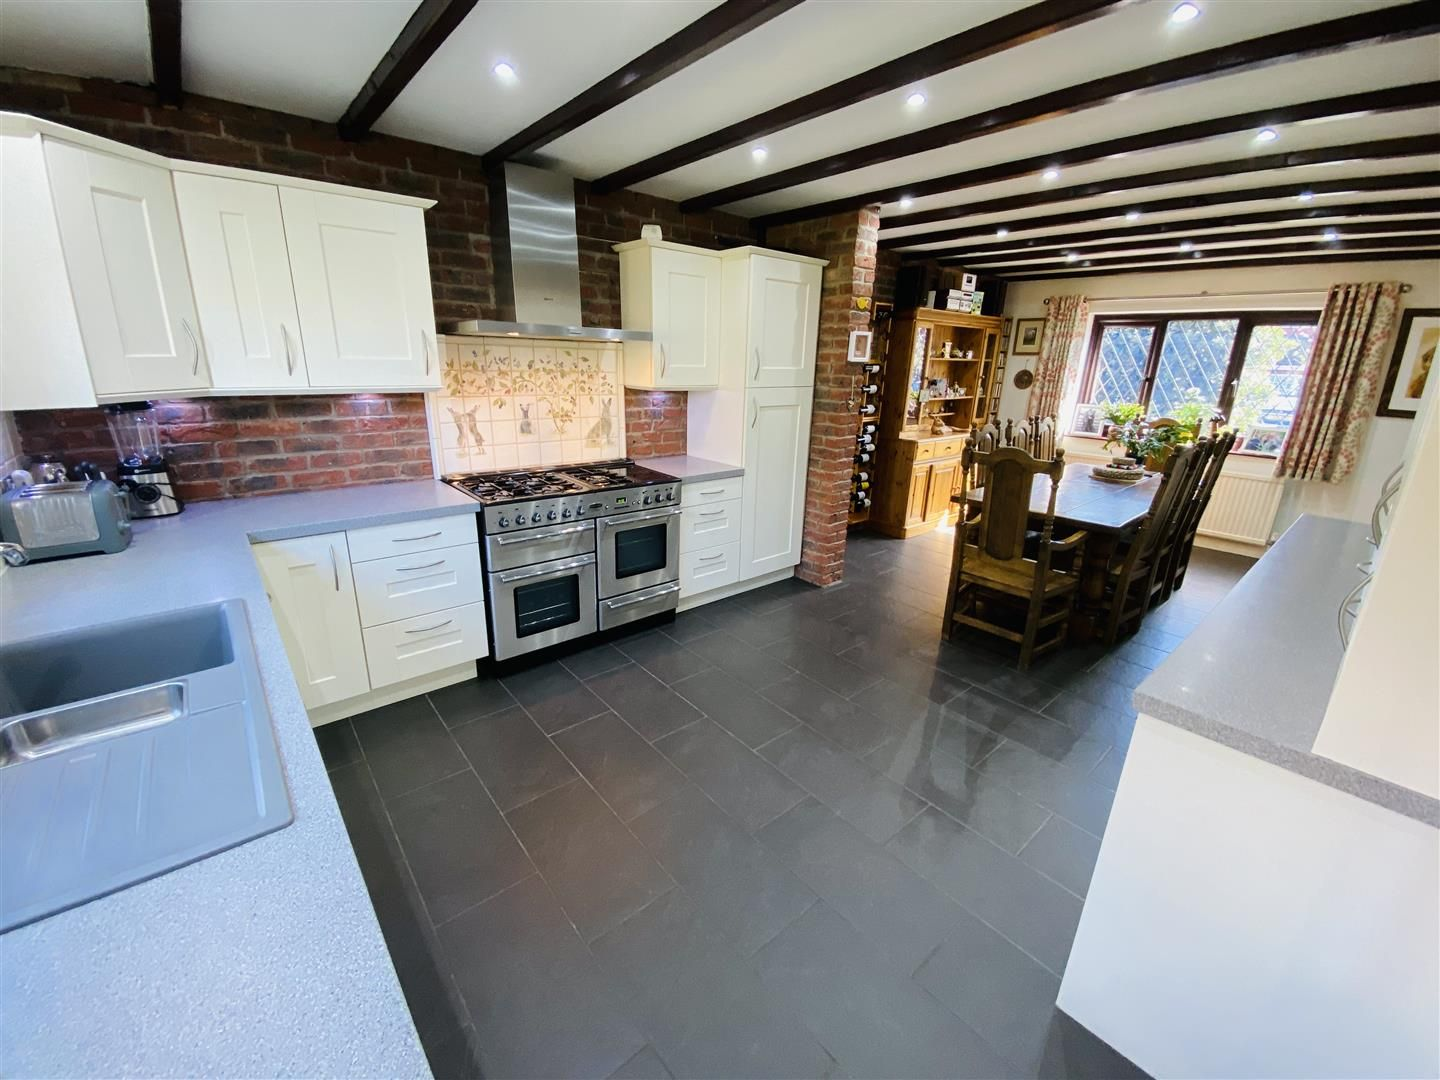 Property photo 1 of 22. Kitchen Diner